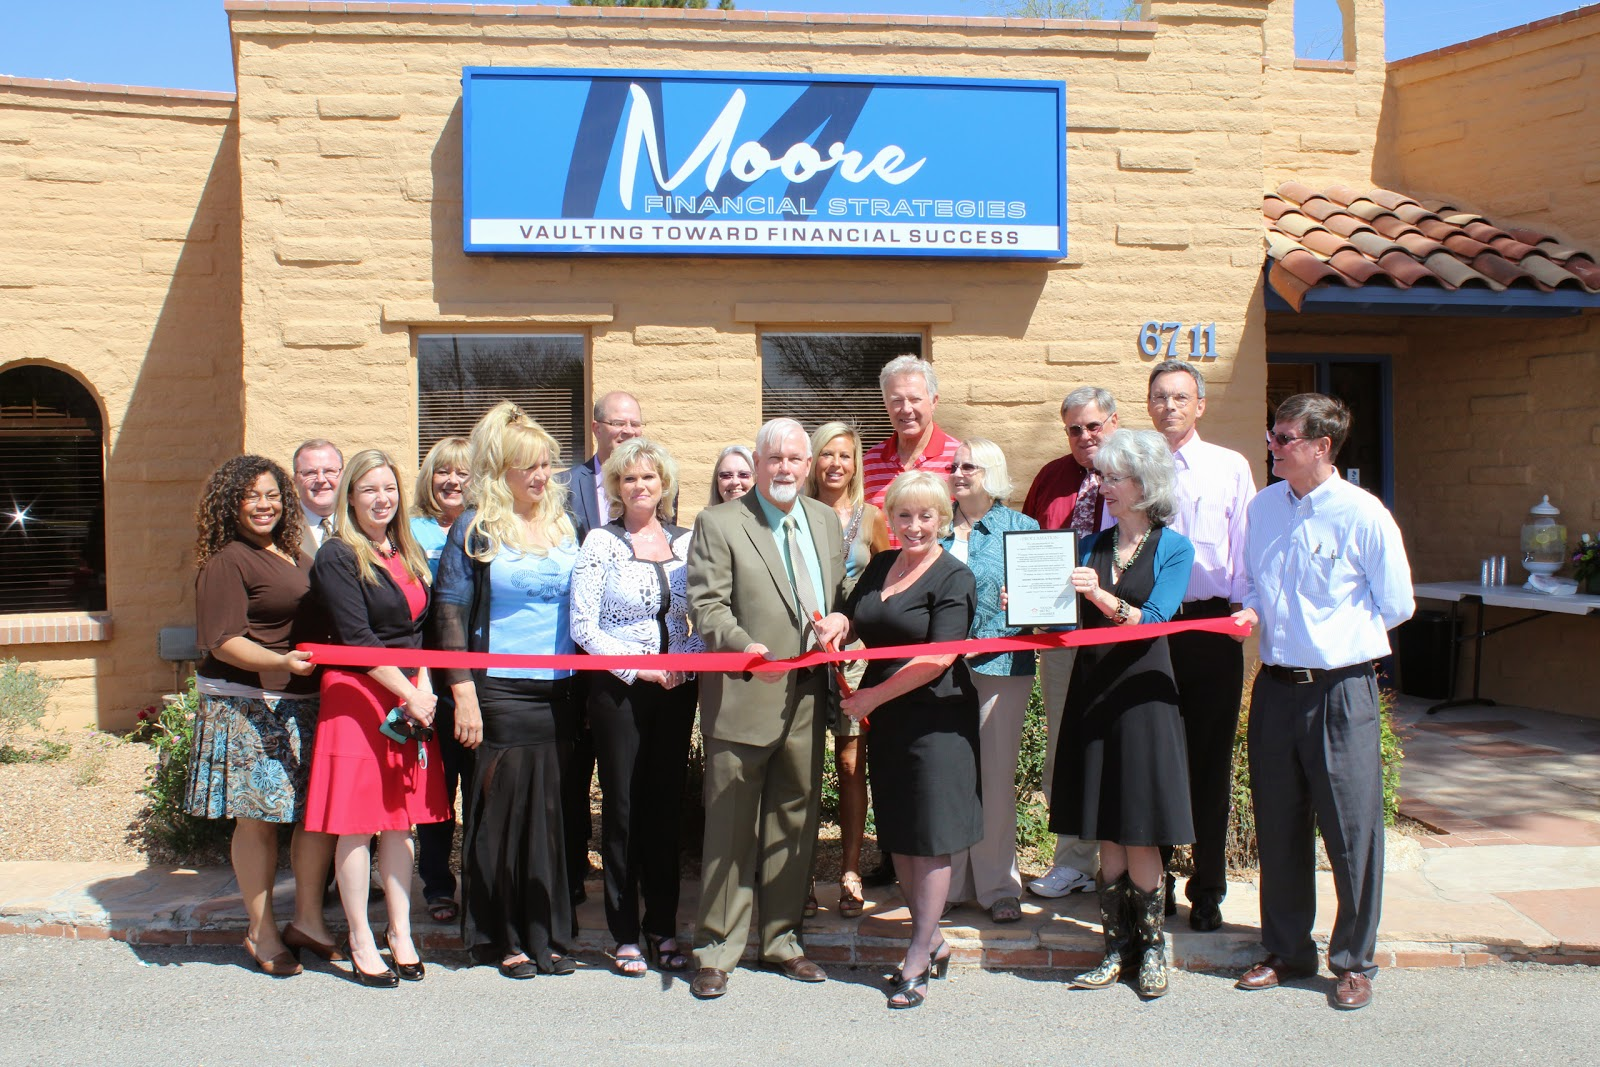 Moore Financial Strategies has moved to a new location.  Conveniently located at the entrance to Tucson Country Club Estates, clients have easy access to the building.  Also, celebrating over 23 years in business in Tucson, Susan Moore Vault and her husband Frank Vault welcome new clients to come in to discuss retirement planning.